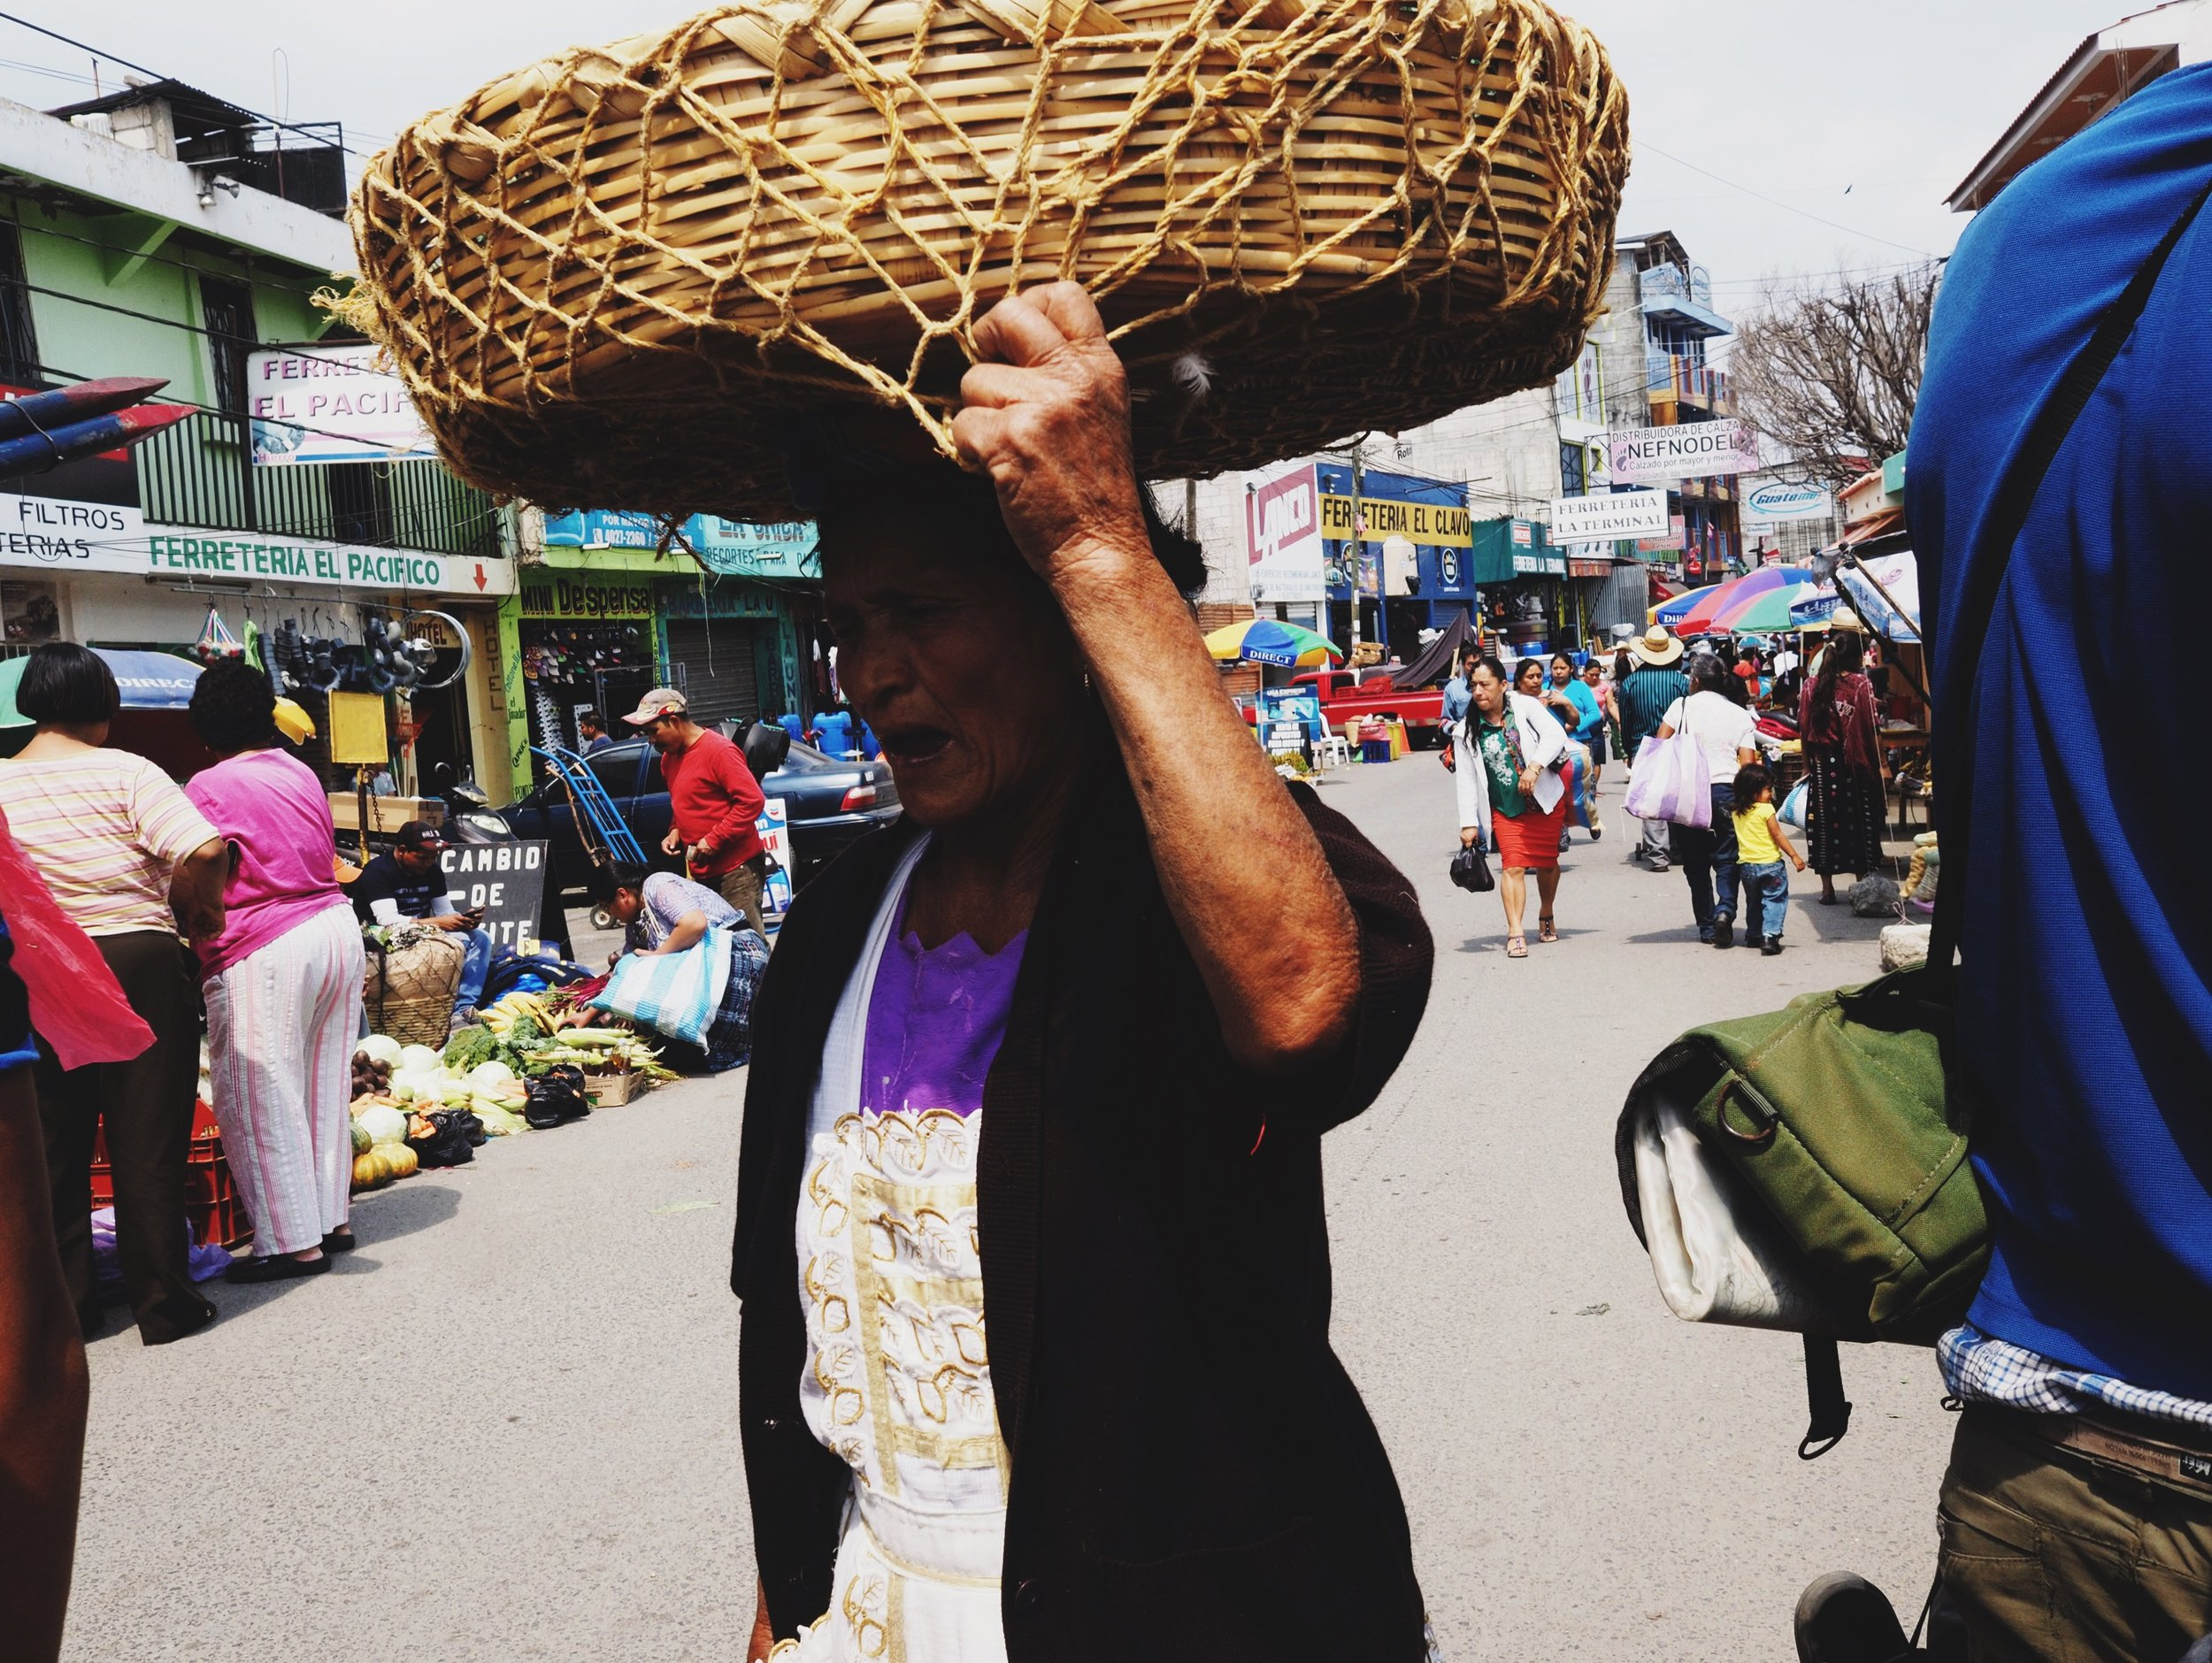 Women carrying things on their head - a common sighting throughout Guatemala